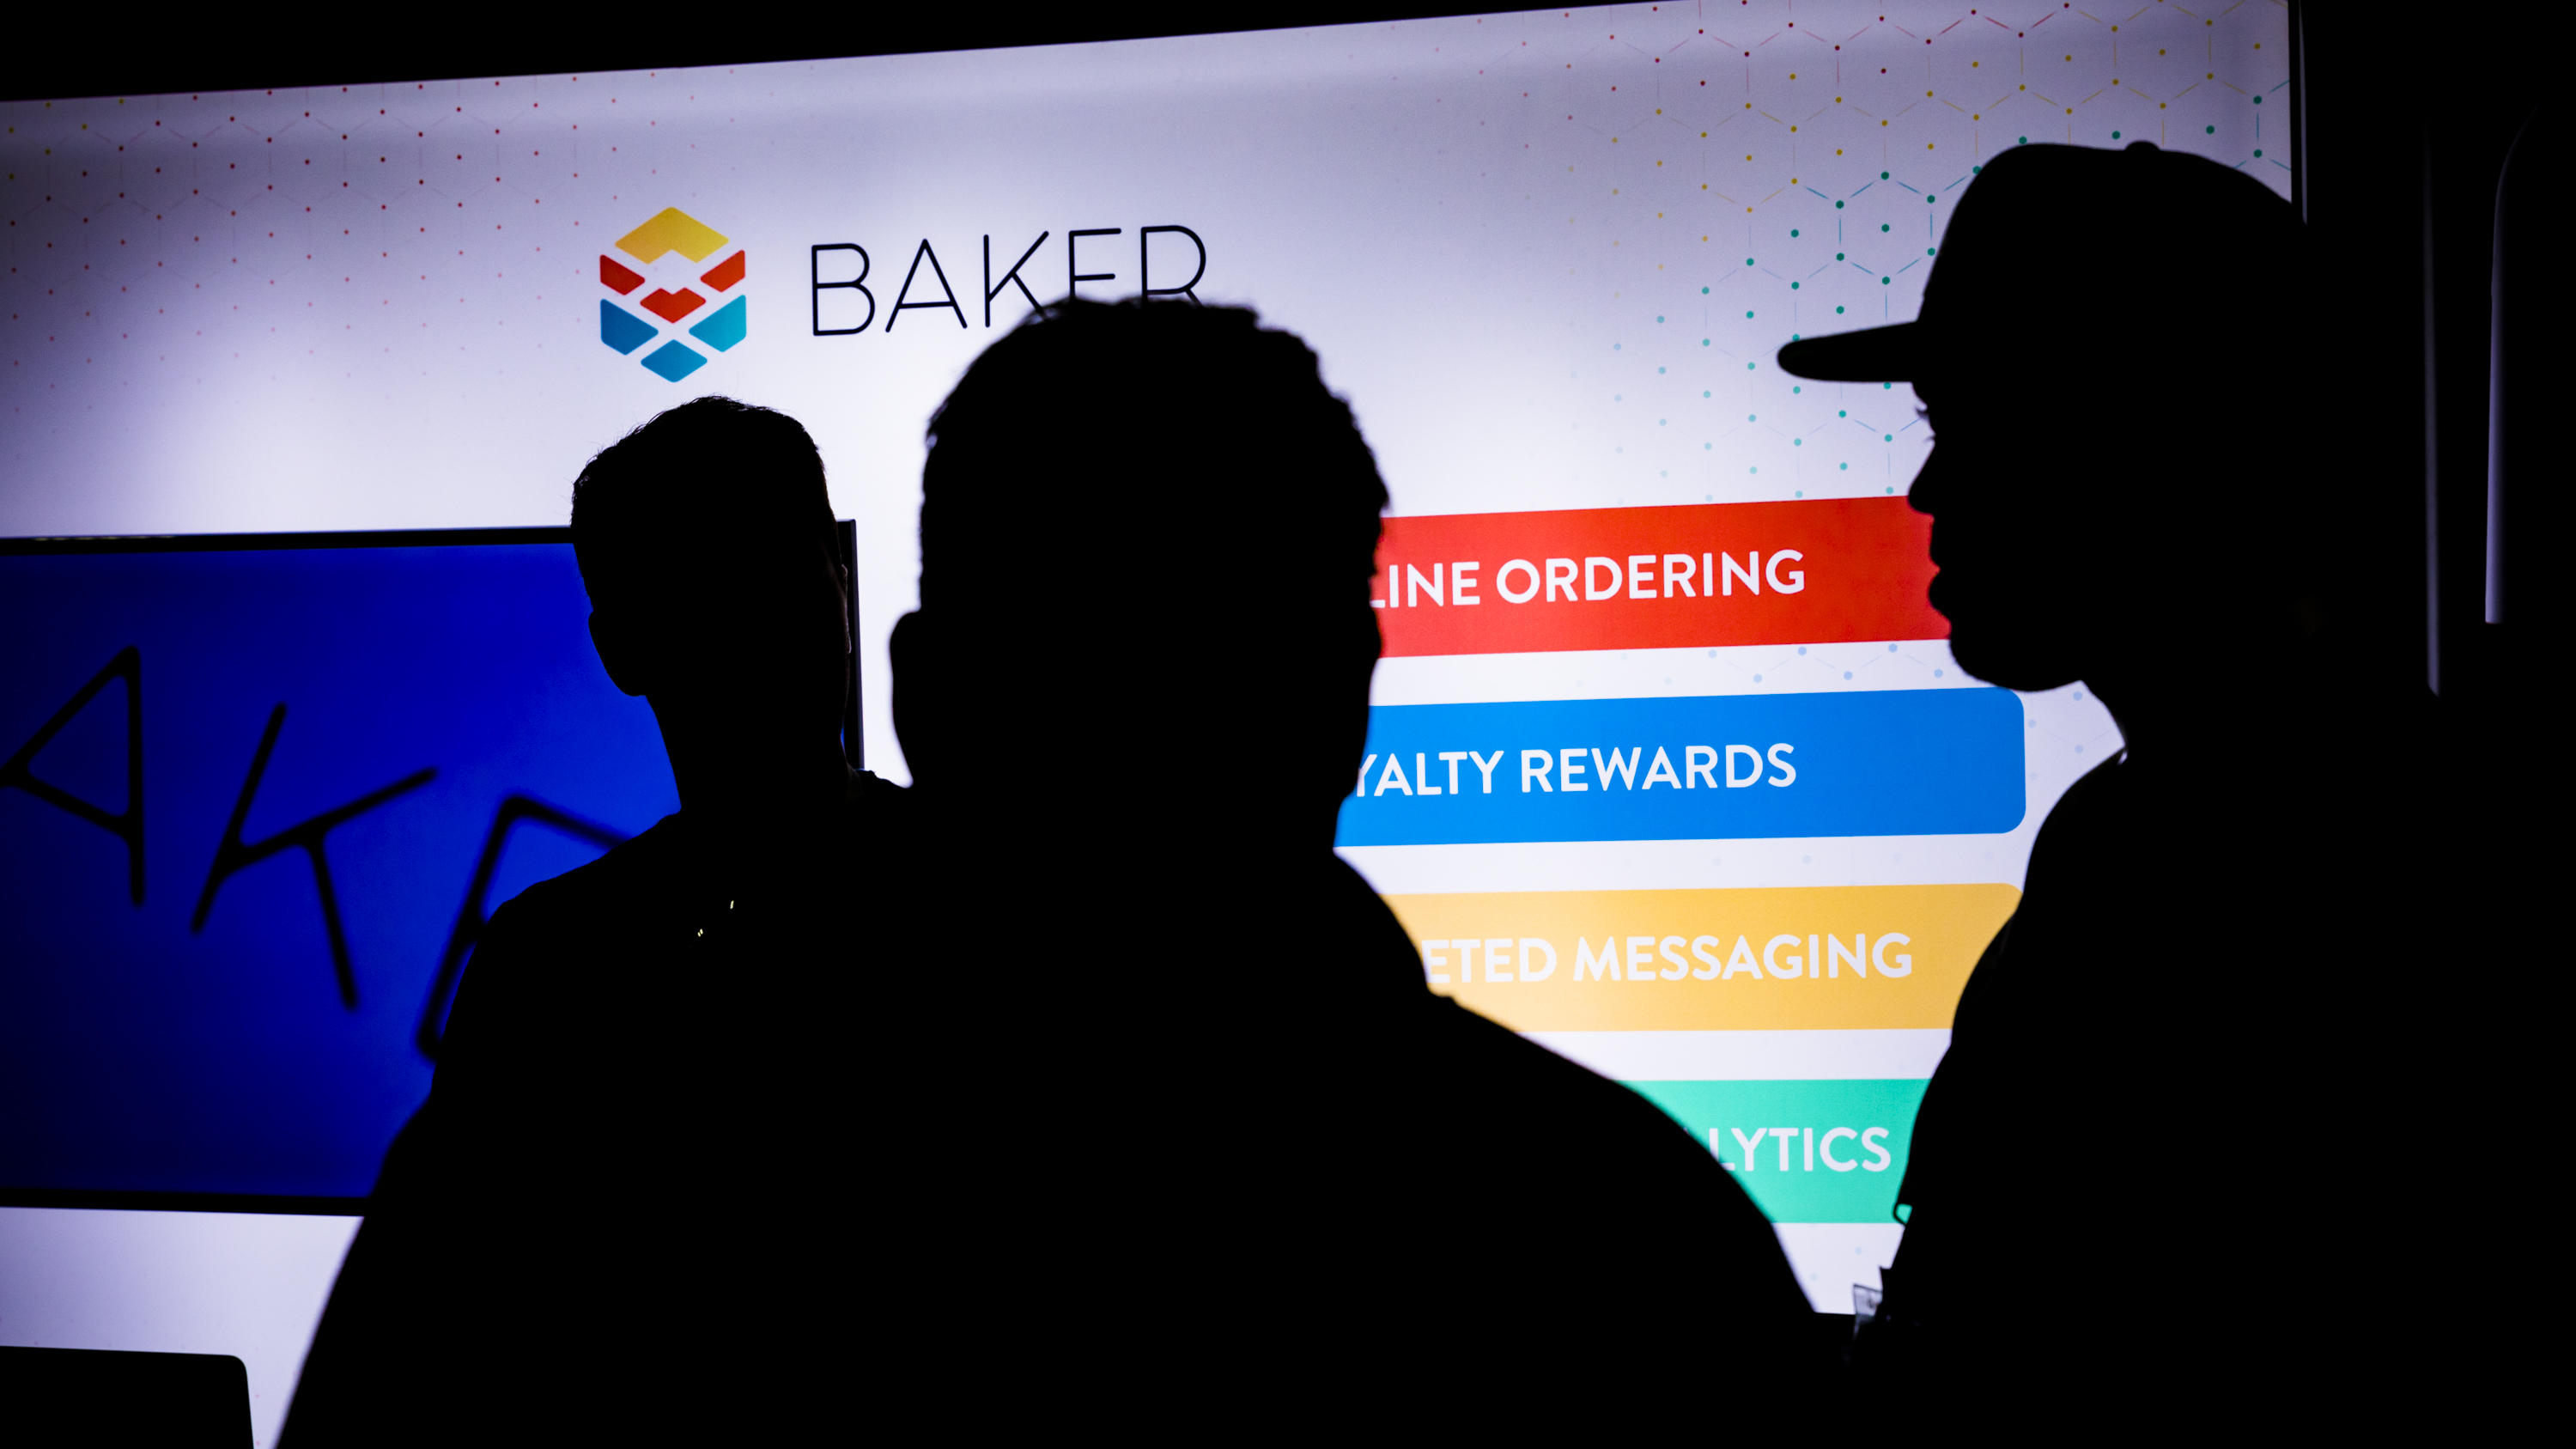 Baker is a customer relationship management, or CRM, tool designed to help dispensaries grow their business and build relationships with customers.